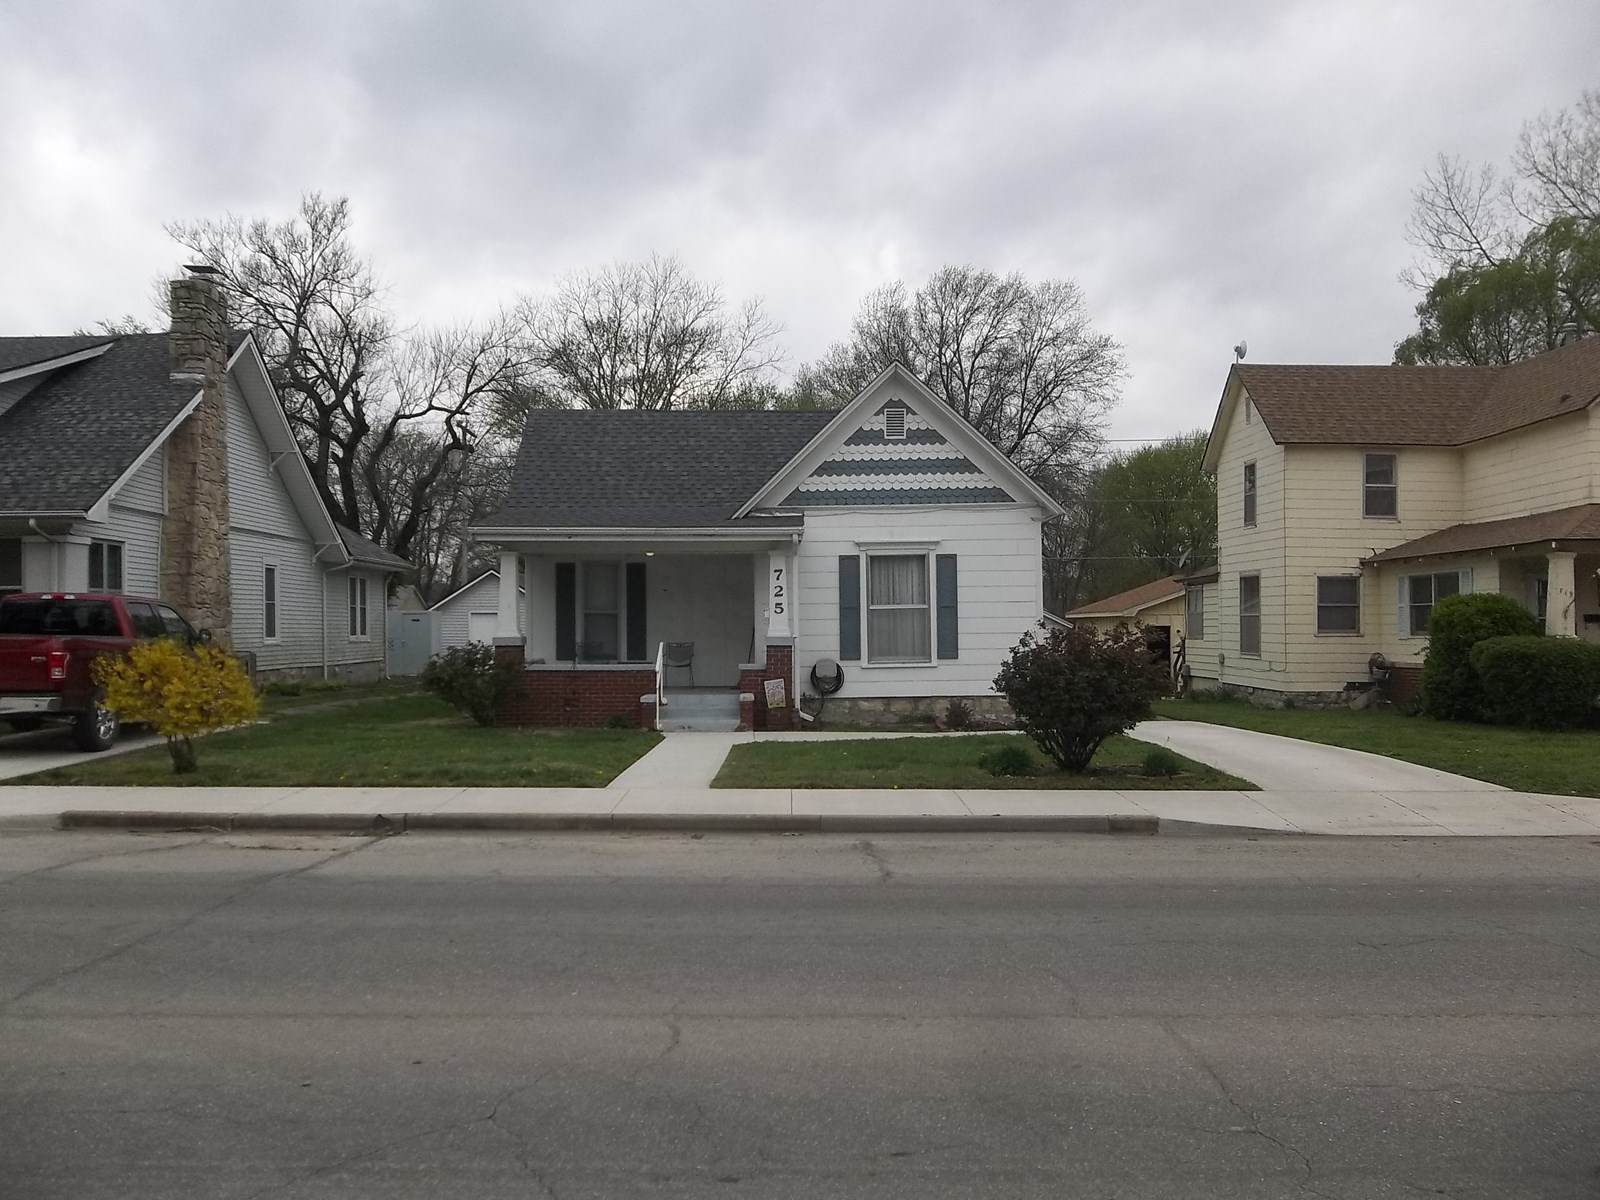 House for Sale in Chanute, KS